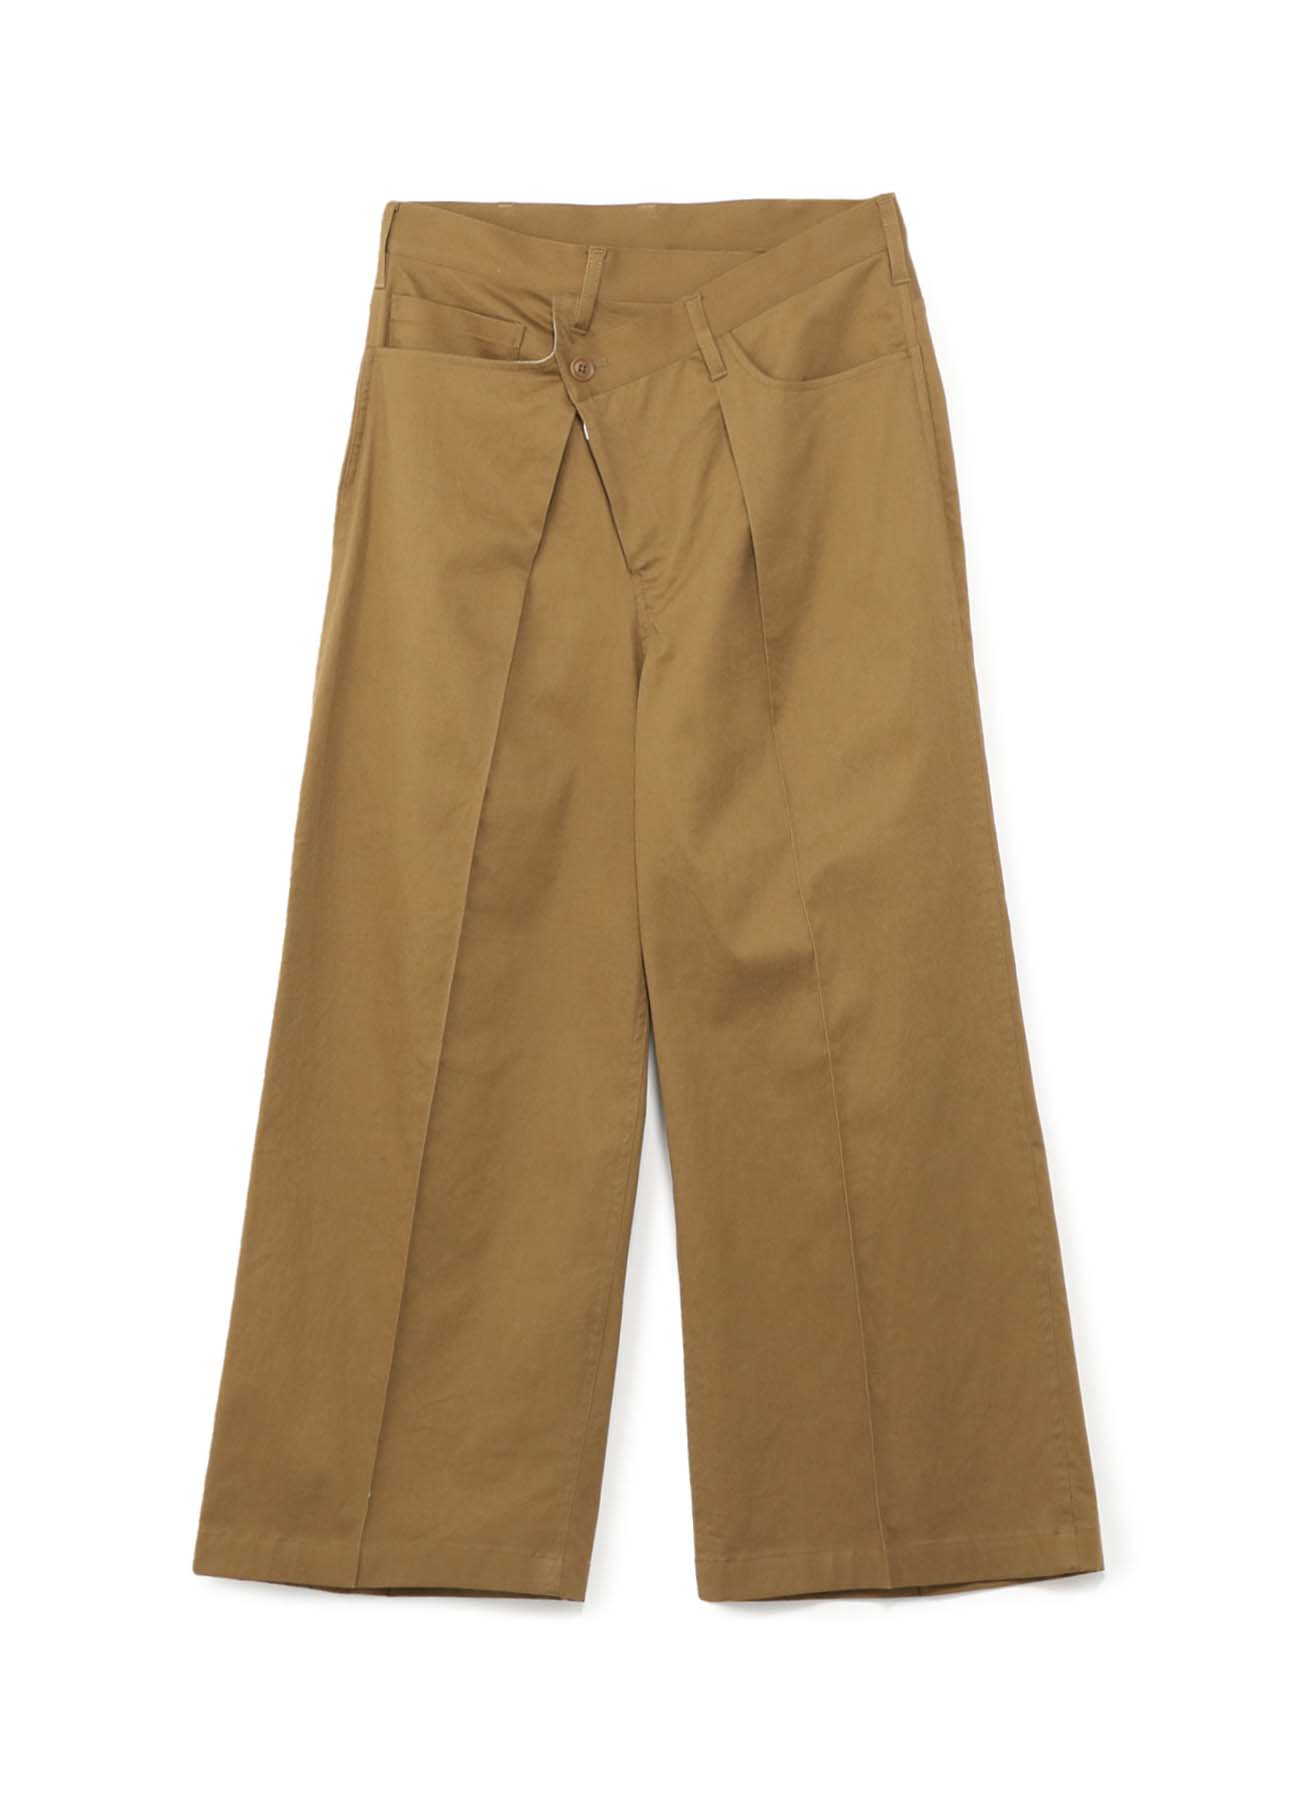 Cotton/Linen Stretch Twill Twisted Waist Pants